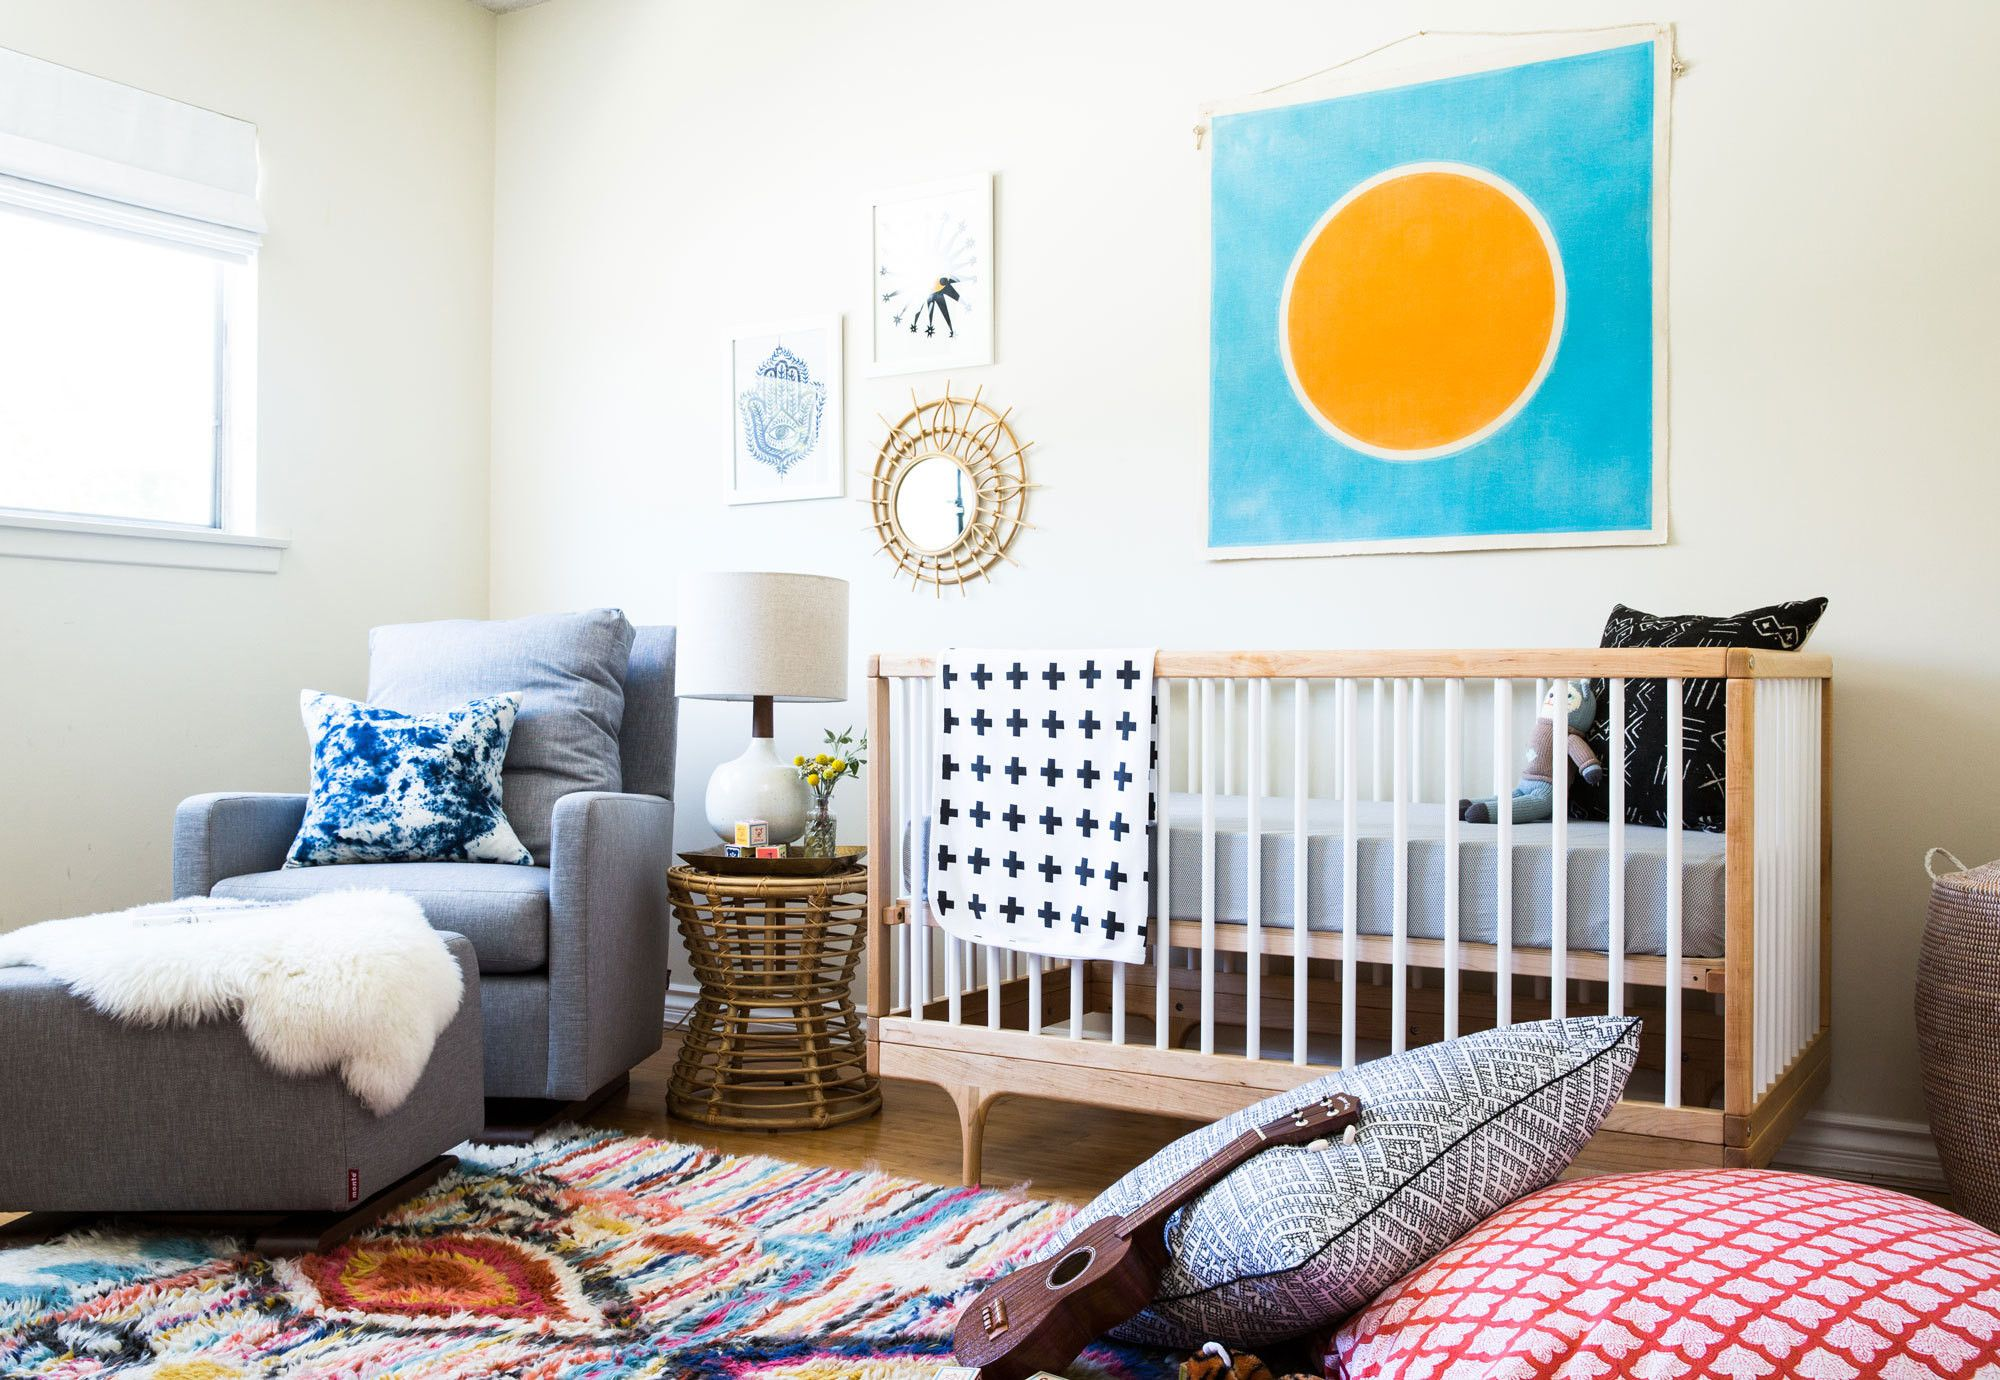 Before & After A Colorful Nursery in Southern California